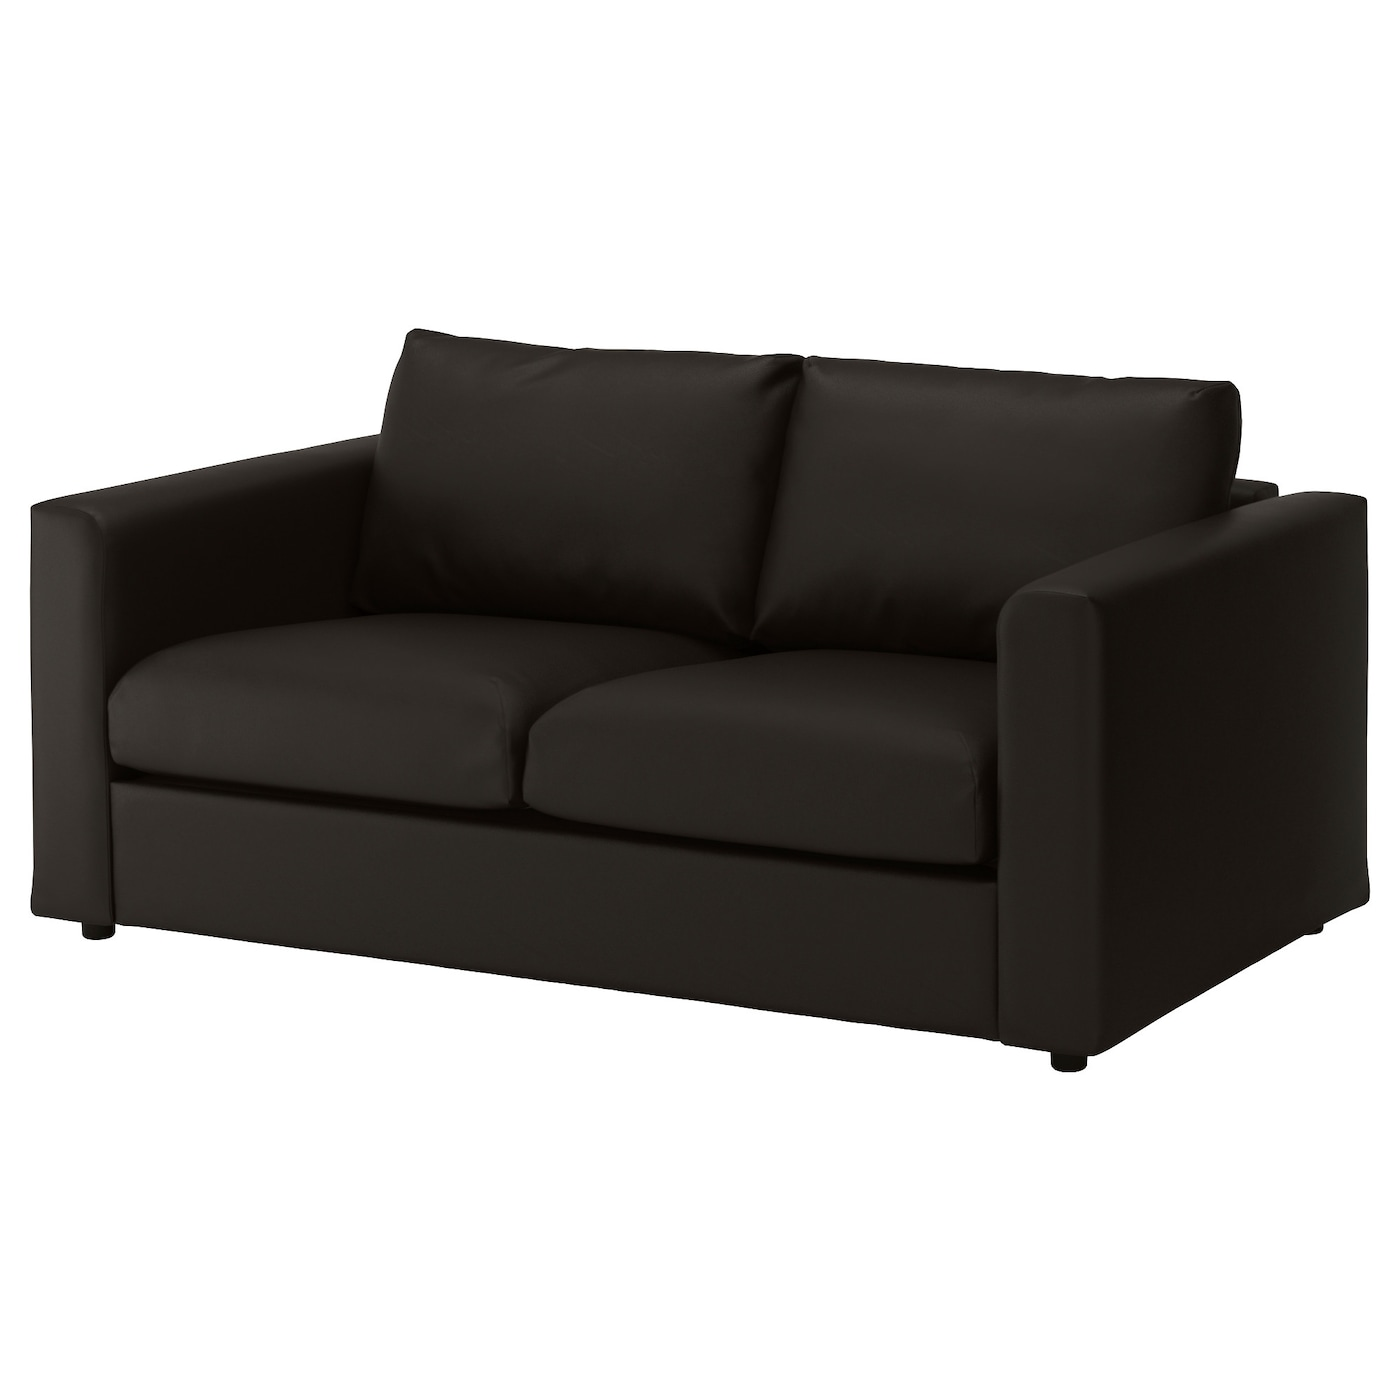 fabric sofas ikea. Black Bedroom Furniture Sets. Home Design Ideas